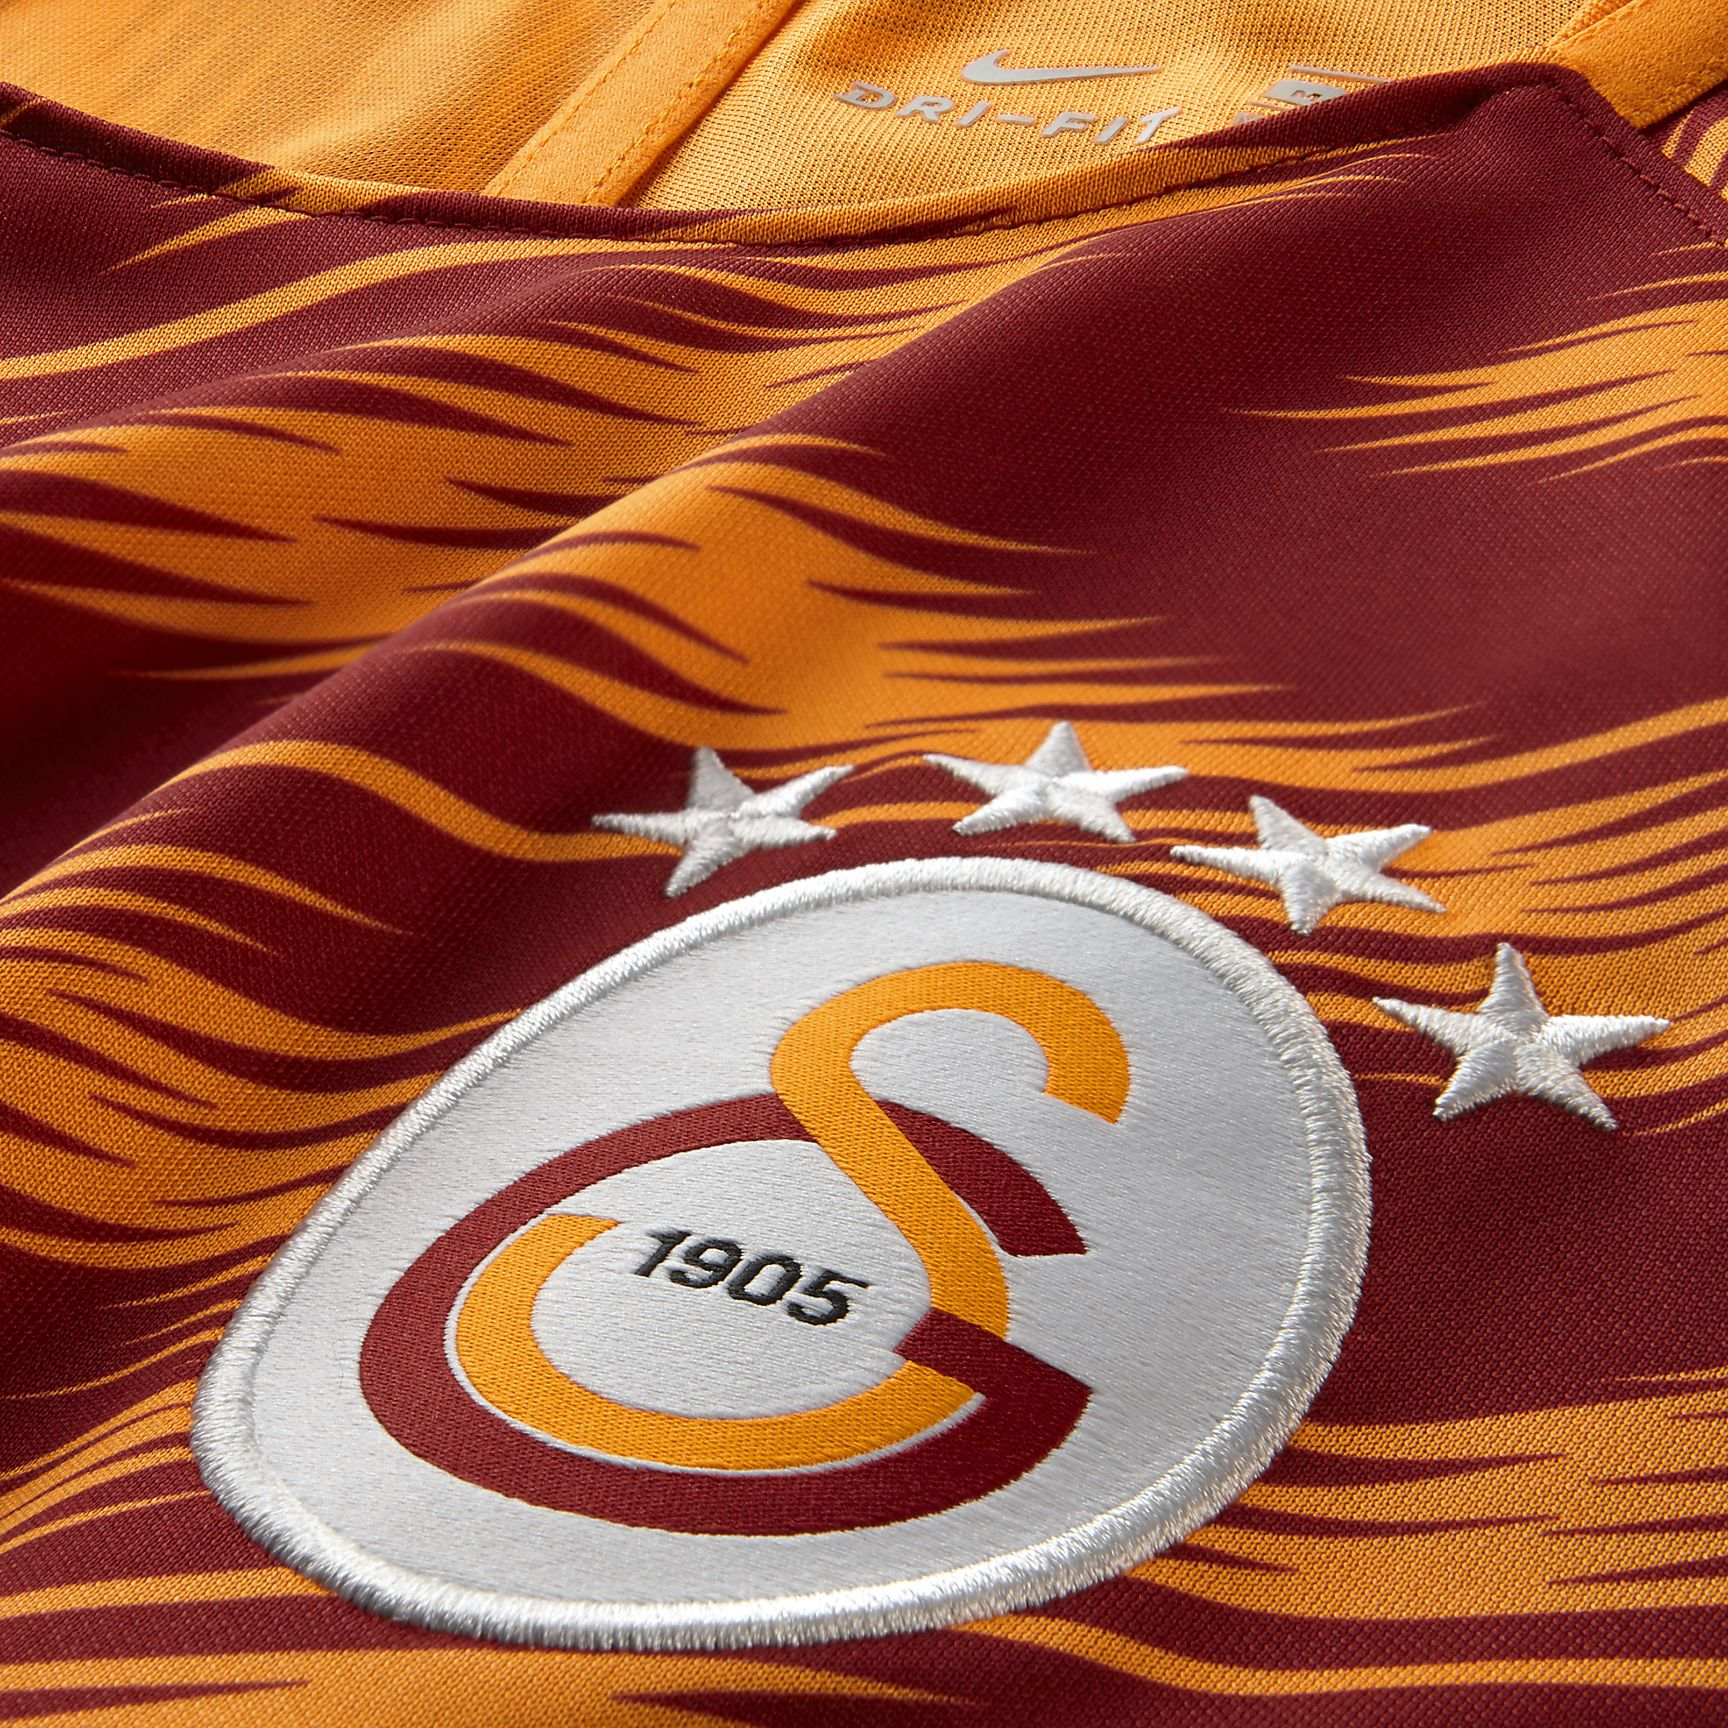 https://c.static-nike.com/a/images/t_PDP_1728_v1/f_auto/evuc87v0zwc319kb98zv/galatasaray-sk-dri-fit-squad-football-top-j4kxf9.jpg